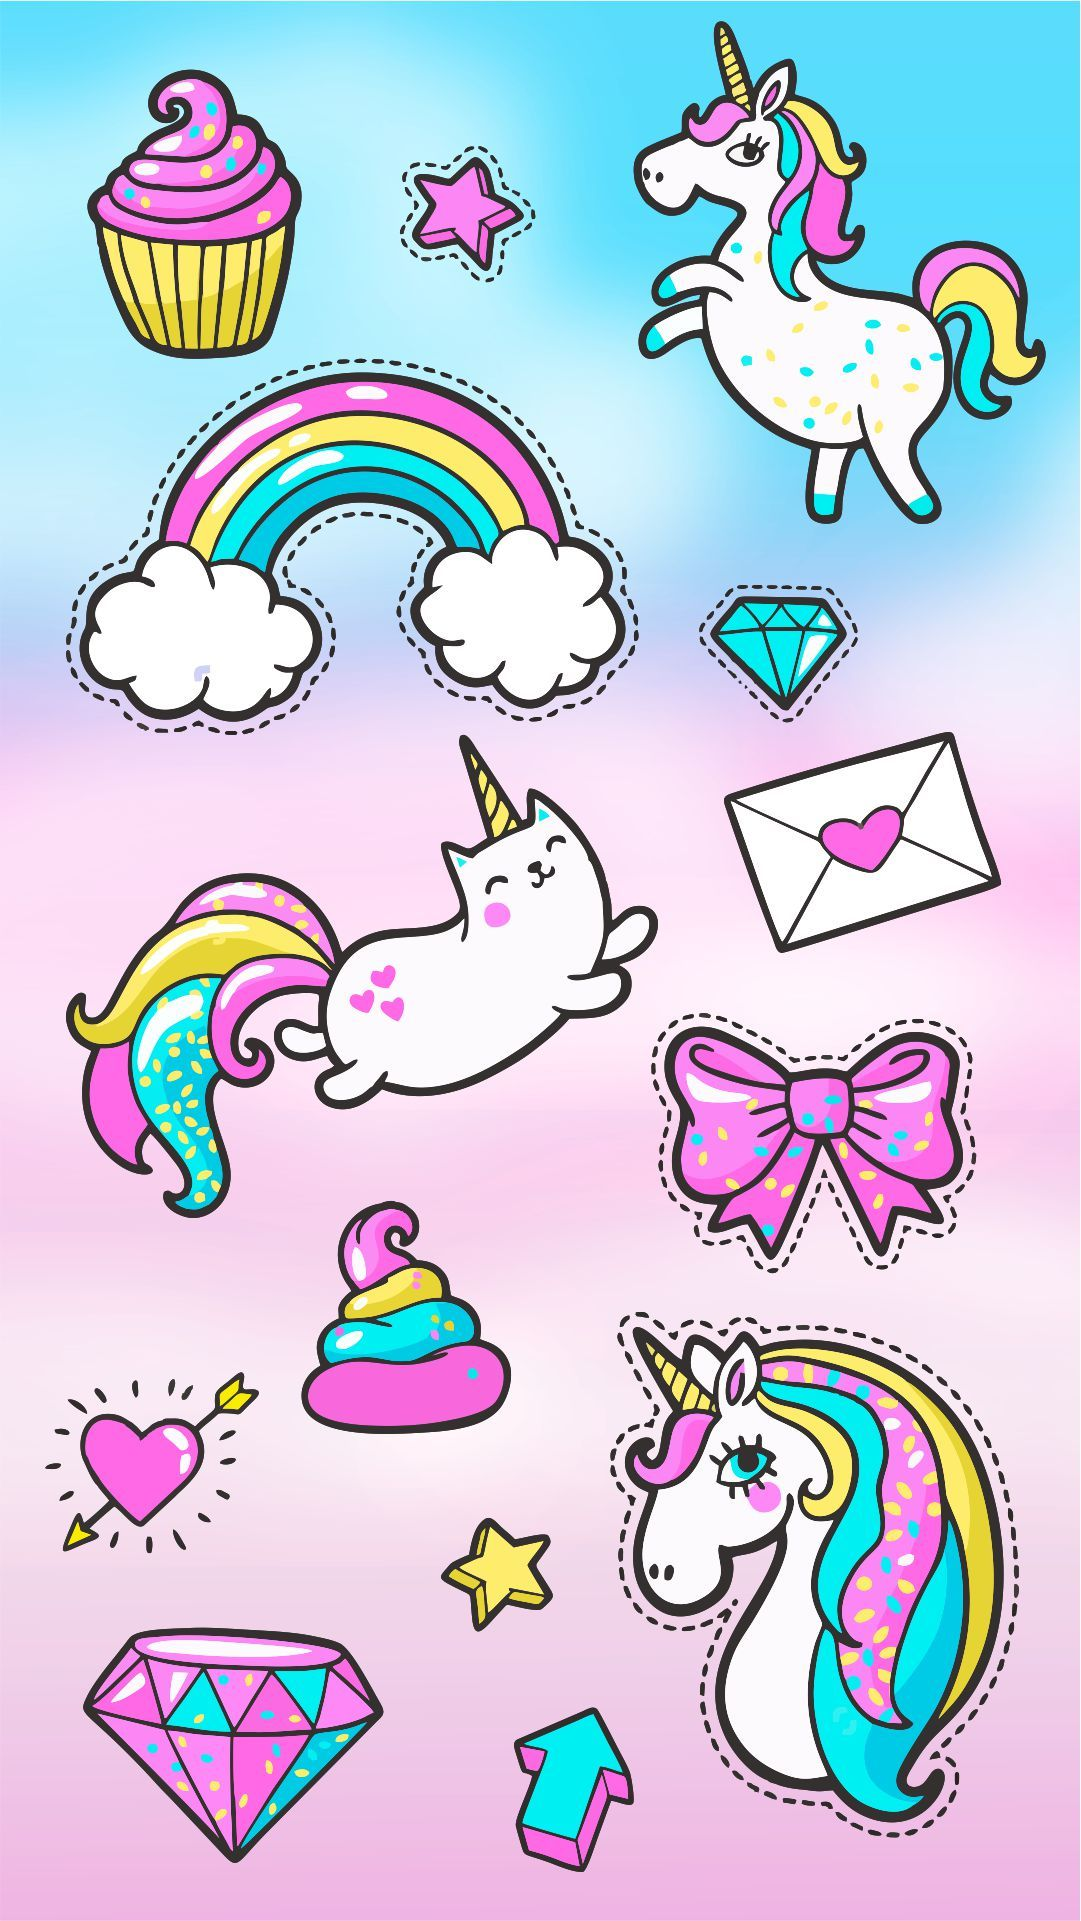 magic unicorns animated wallpaper - photo #30